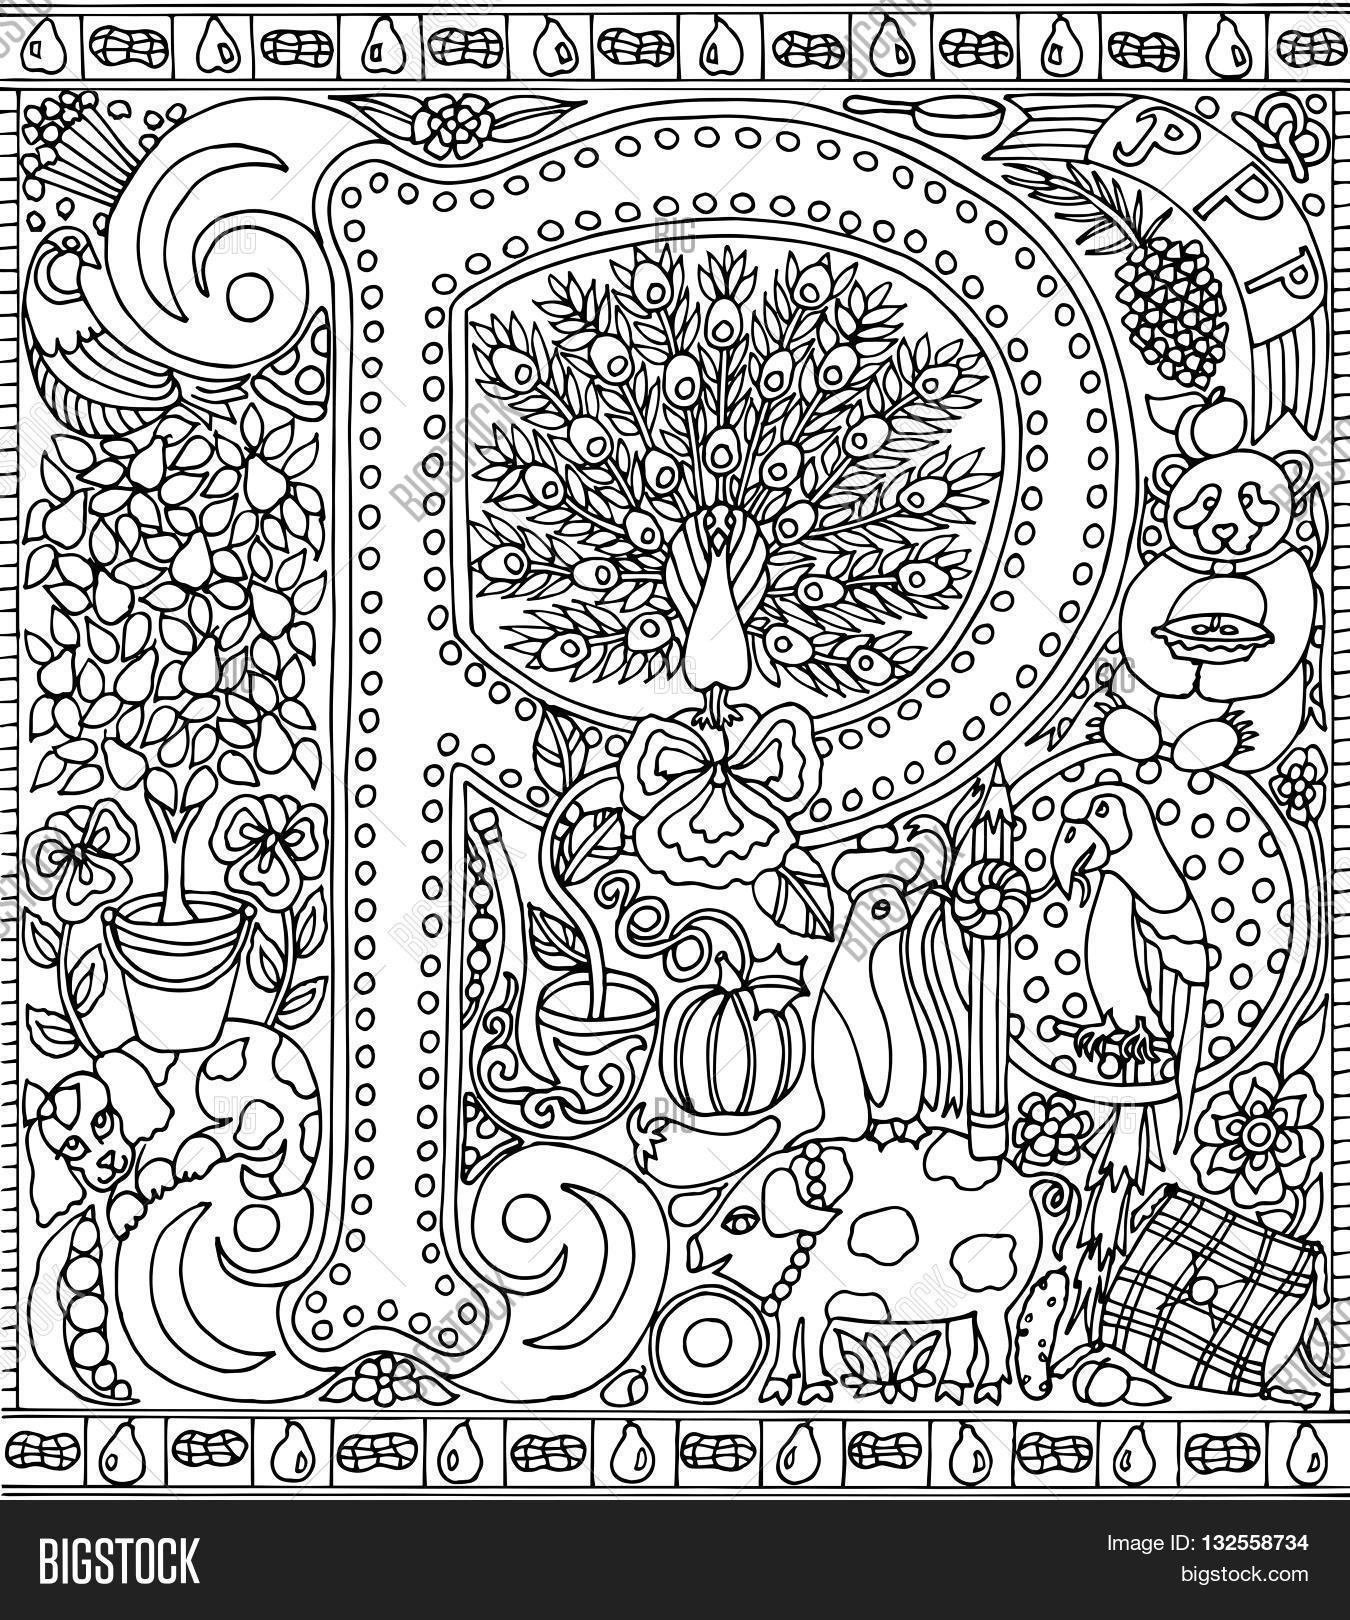 The coloring book poster - Adult Coloring Book Poster Alphabet Letter P Black And White Vector Illustration